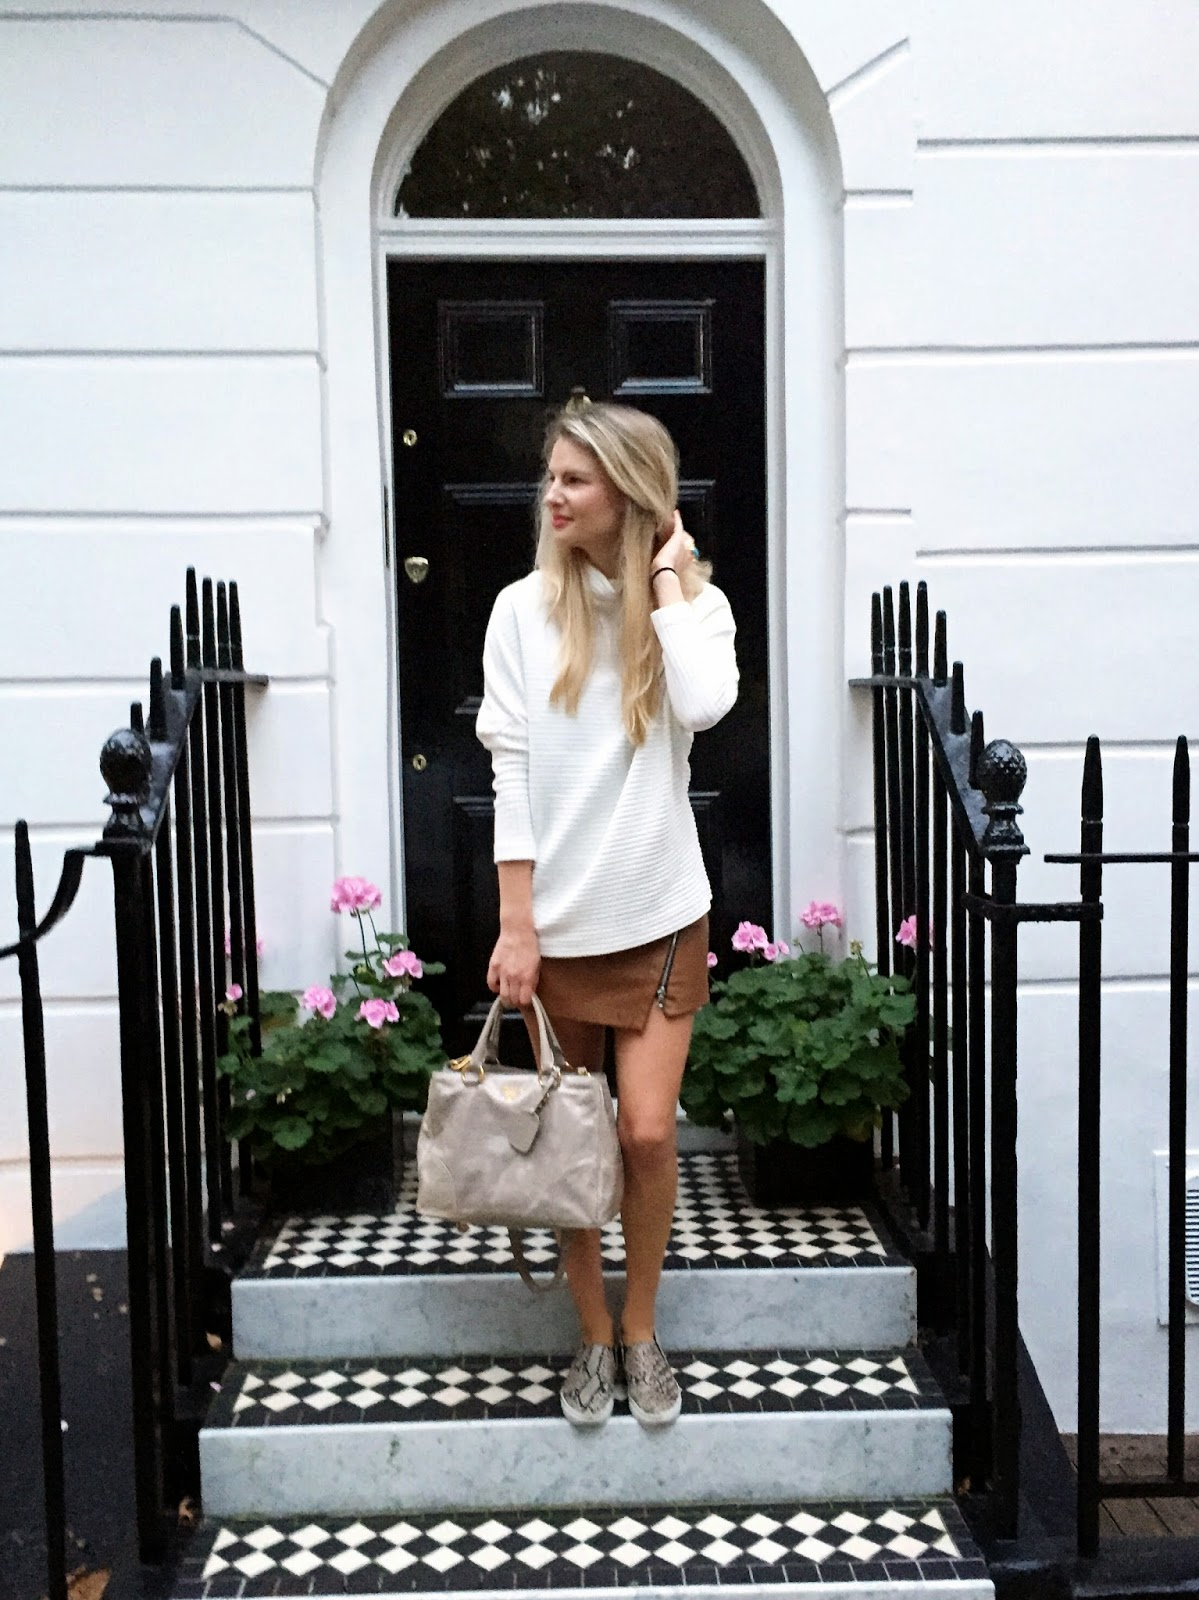 fashion blogger, white turtleneck jumper, leather skirt, jumper and leather skirt, slip ons, street style london, acne style jumper, galactic white jumper, prada bag, fashion blogger london